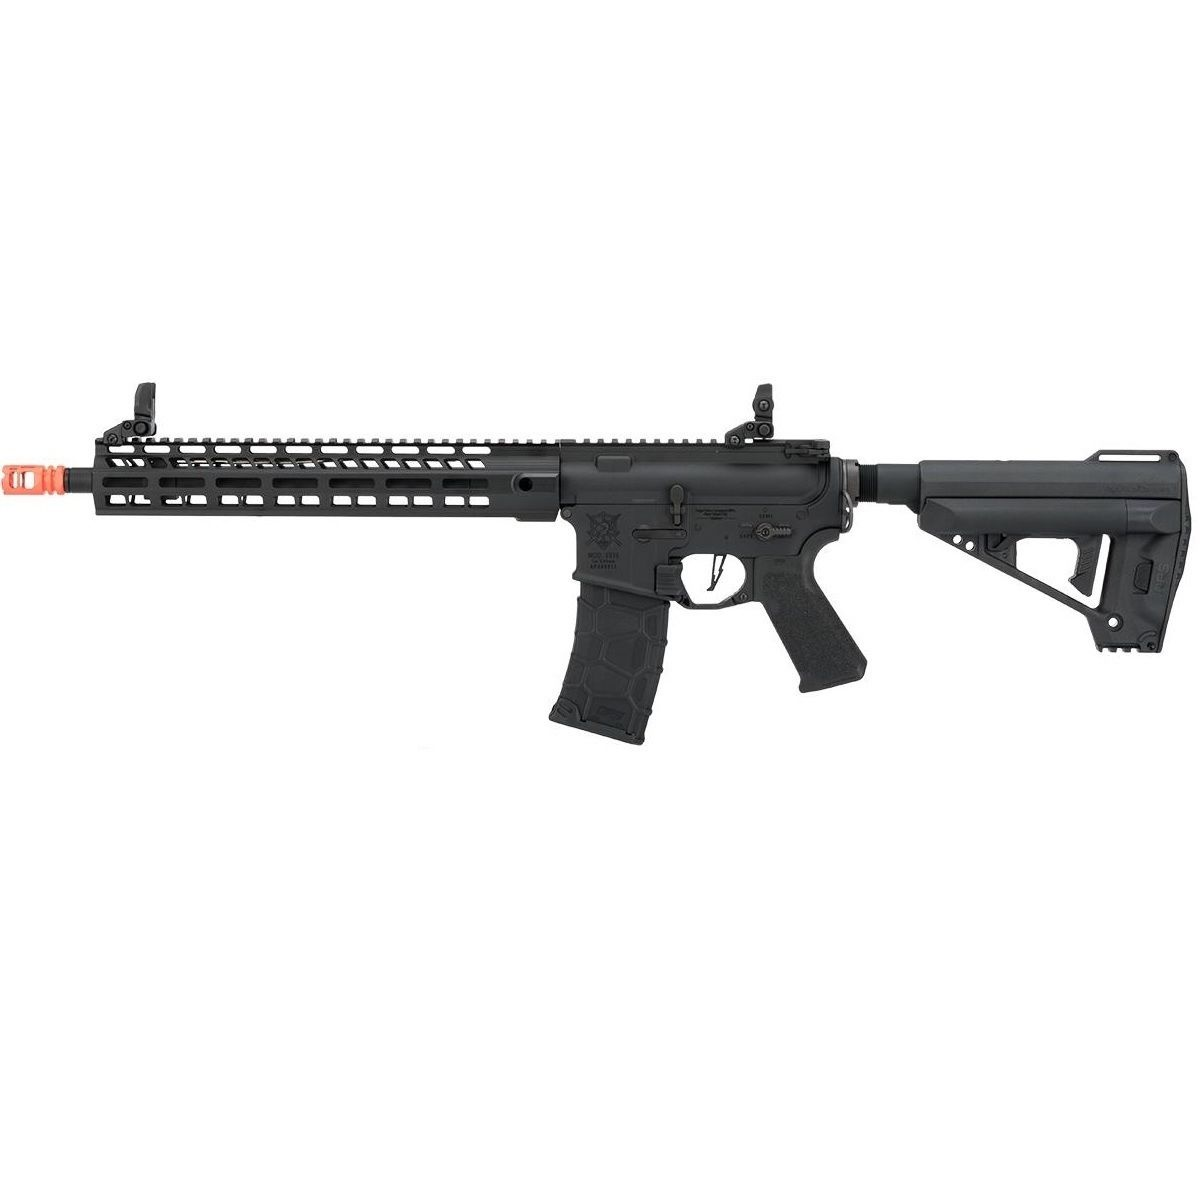 Elite Force Avalon Gen2  VR16 Saber Carbine